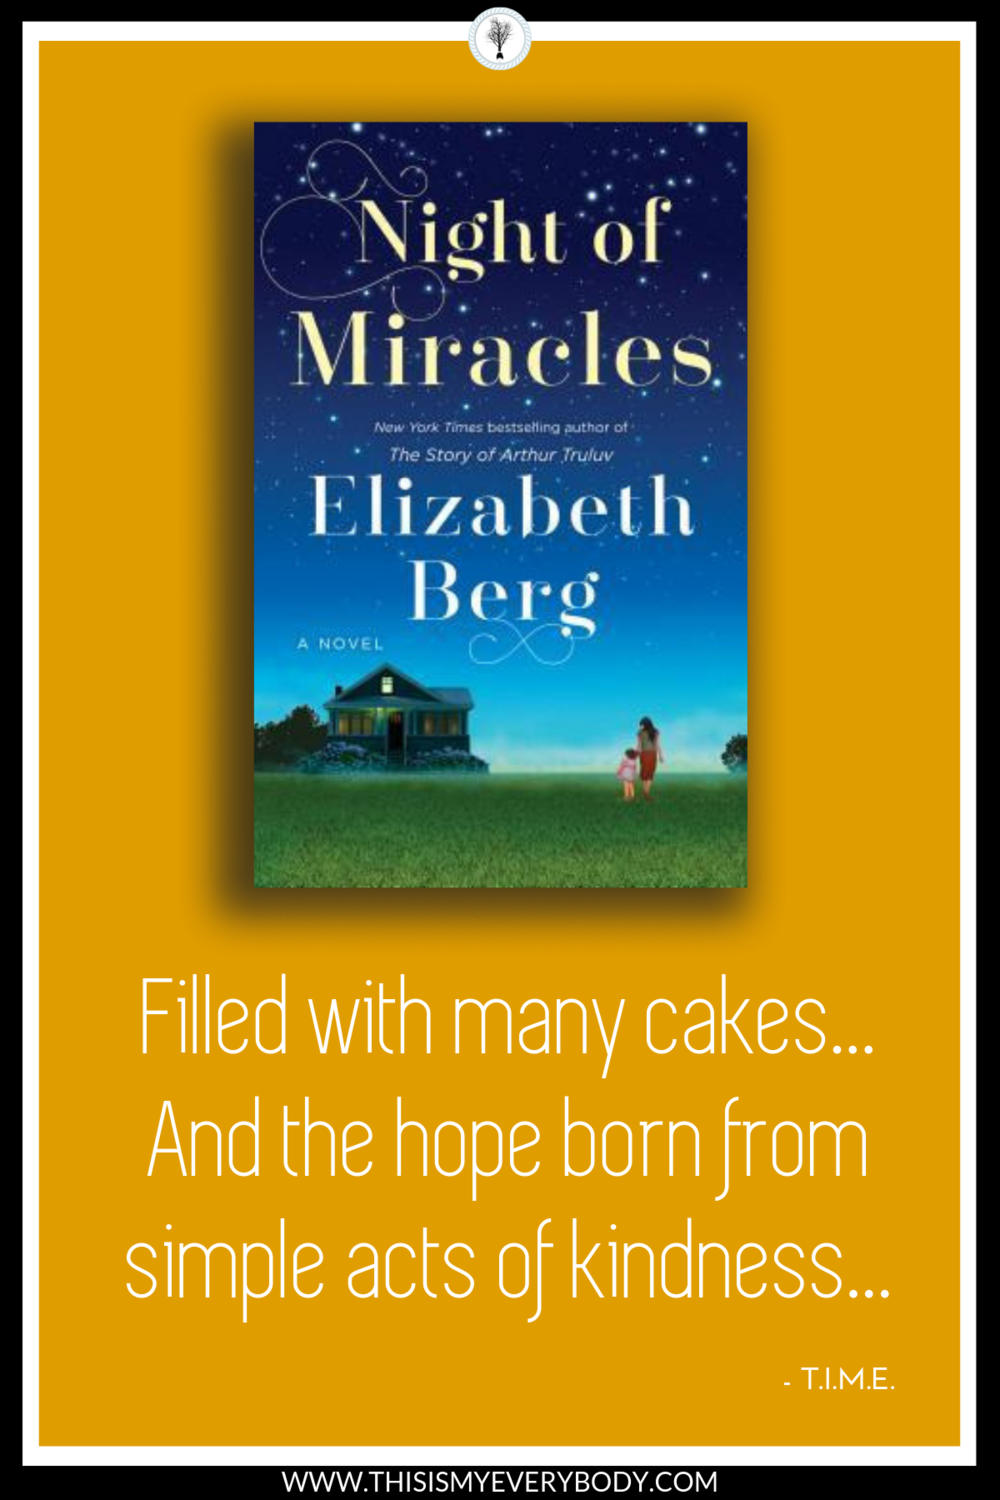 As I turned the pages, I was gently drawn into the lives of each character who were not a family by blood, but became a family by choice. A community.  A book filled with laughter, a few tears, many cakes… and, above all else, the hope born from simple acts of kindness. Night of Miracles by Elizabeth Berg.